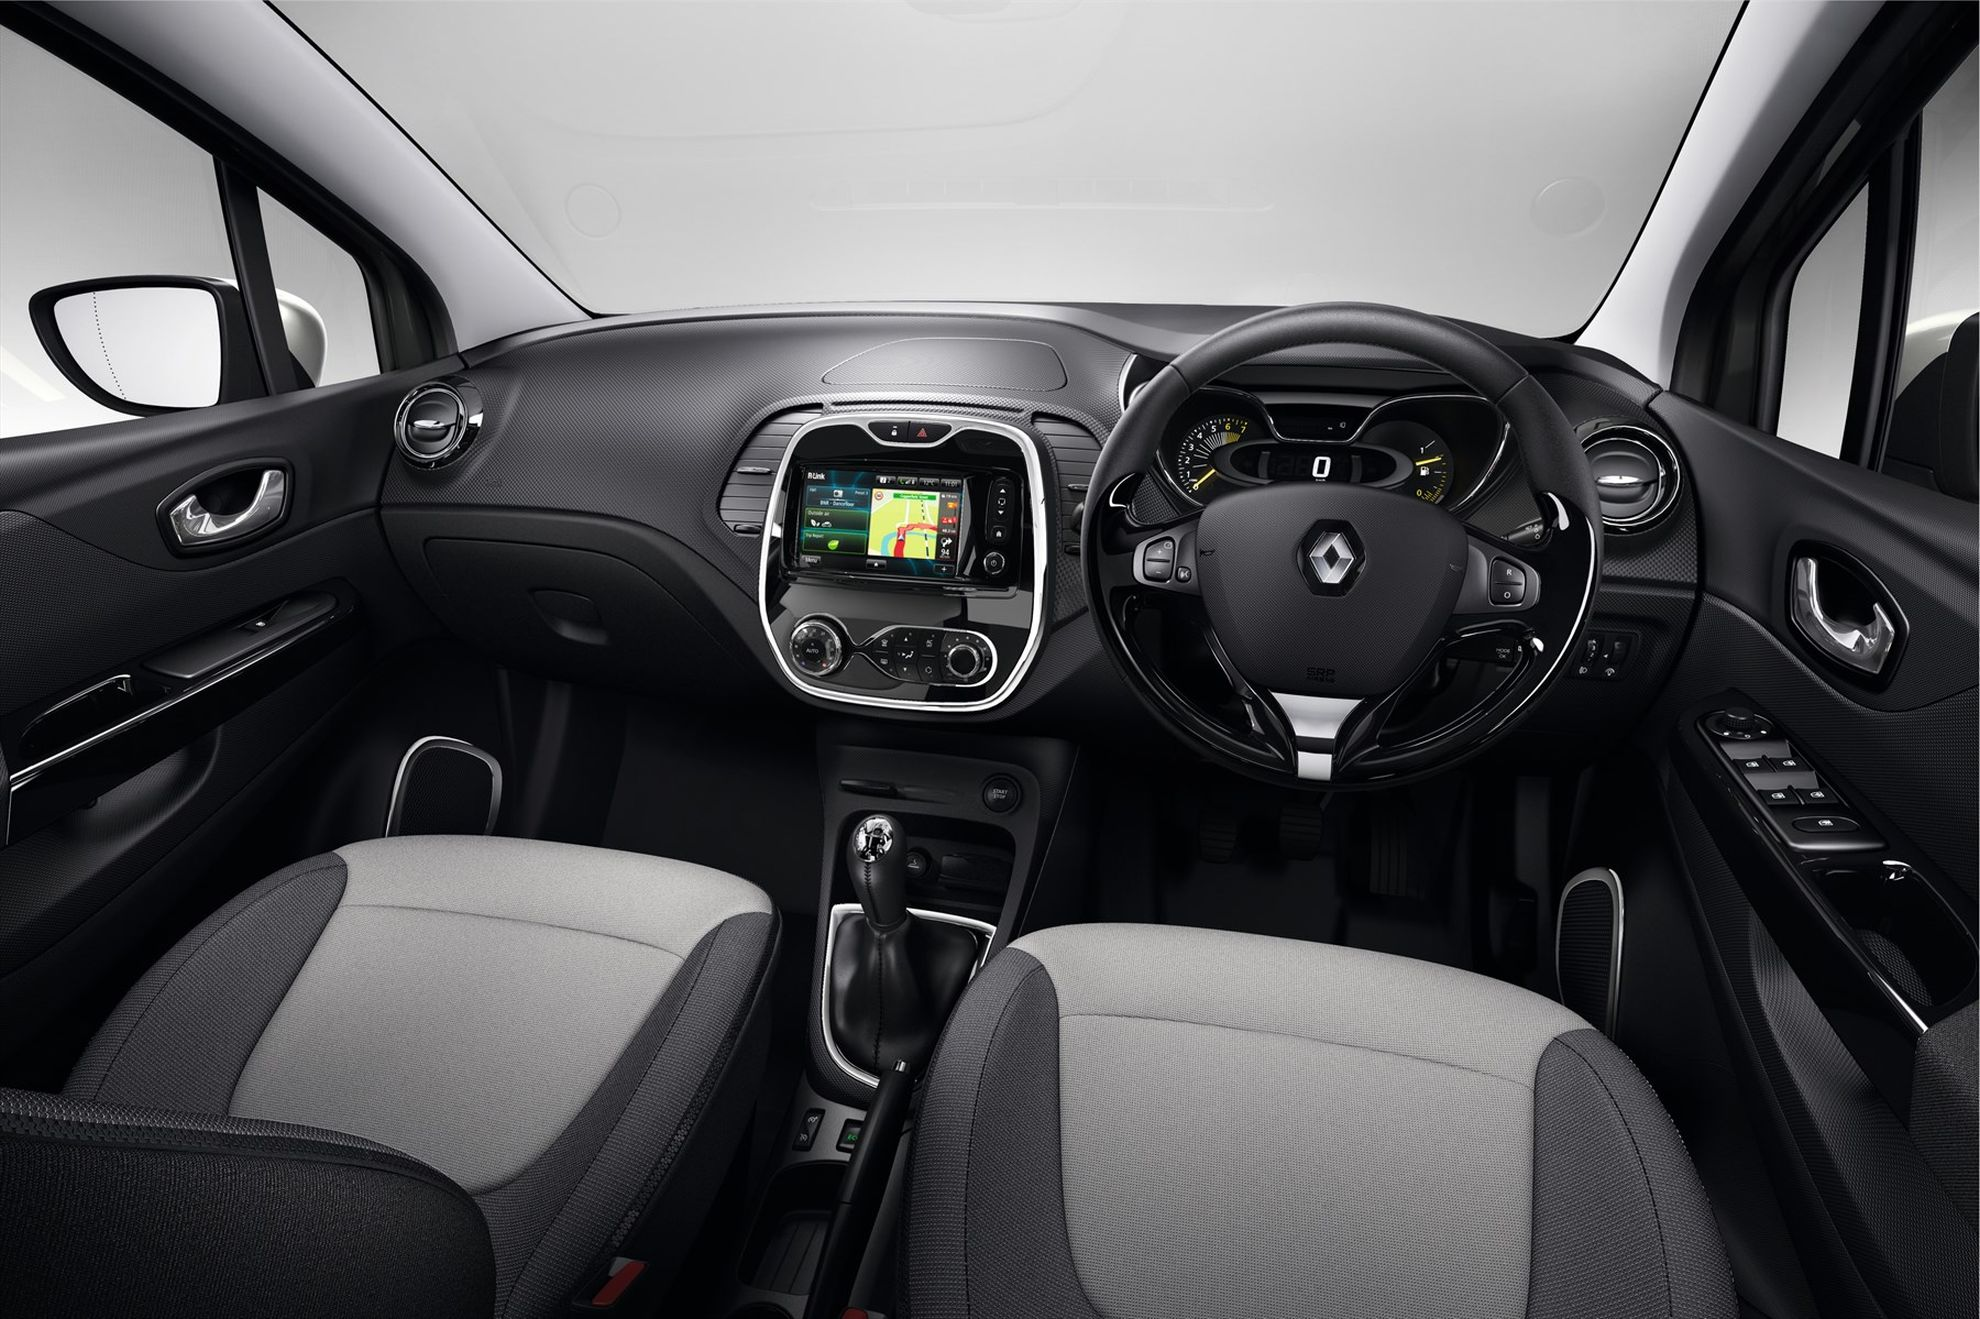 Renault-geared-to-CAPTUR-the-crossover-market-in-South-Africa-interior